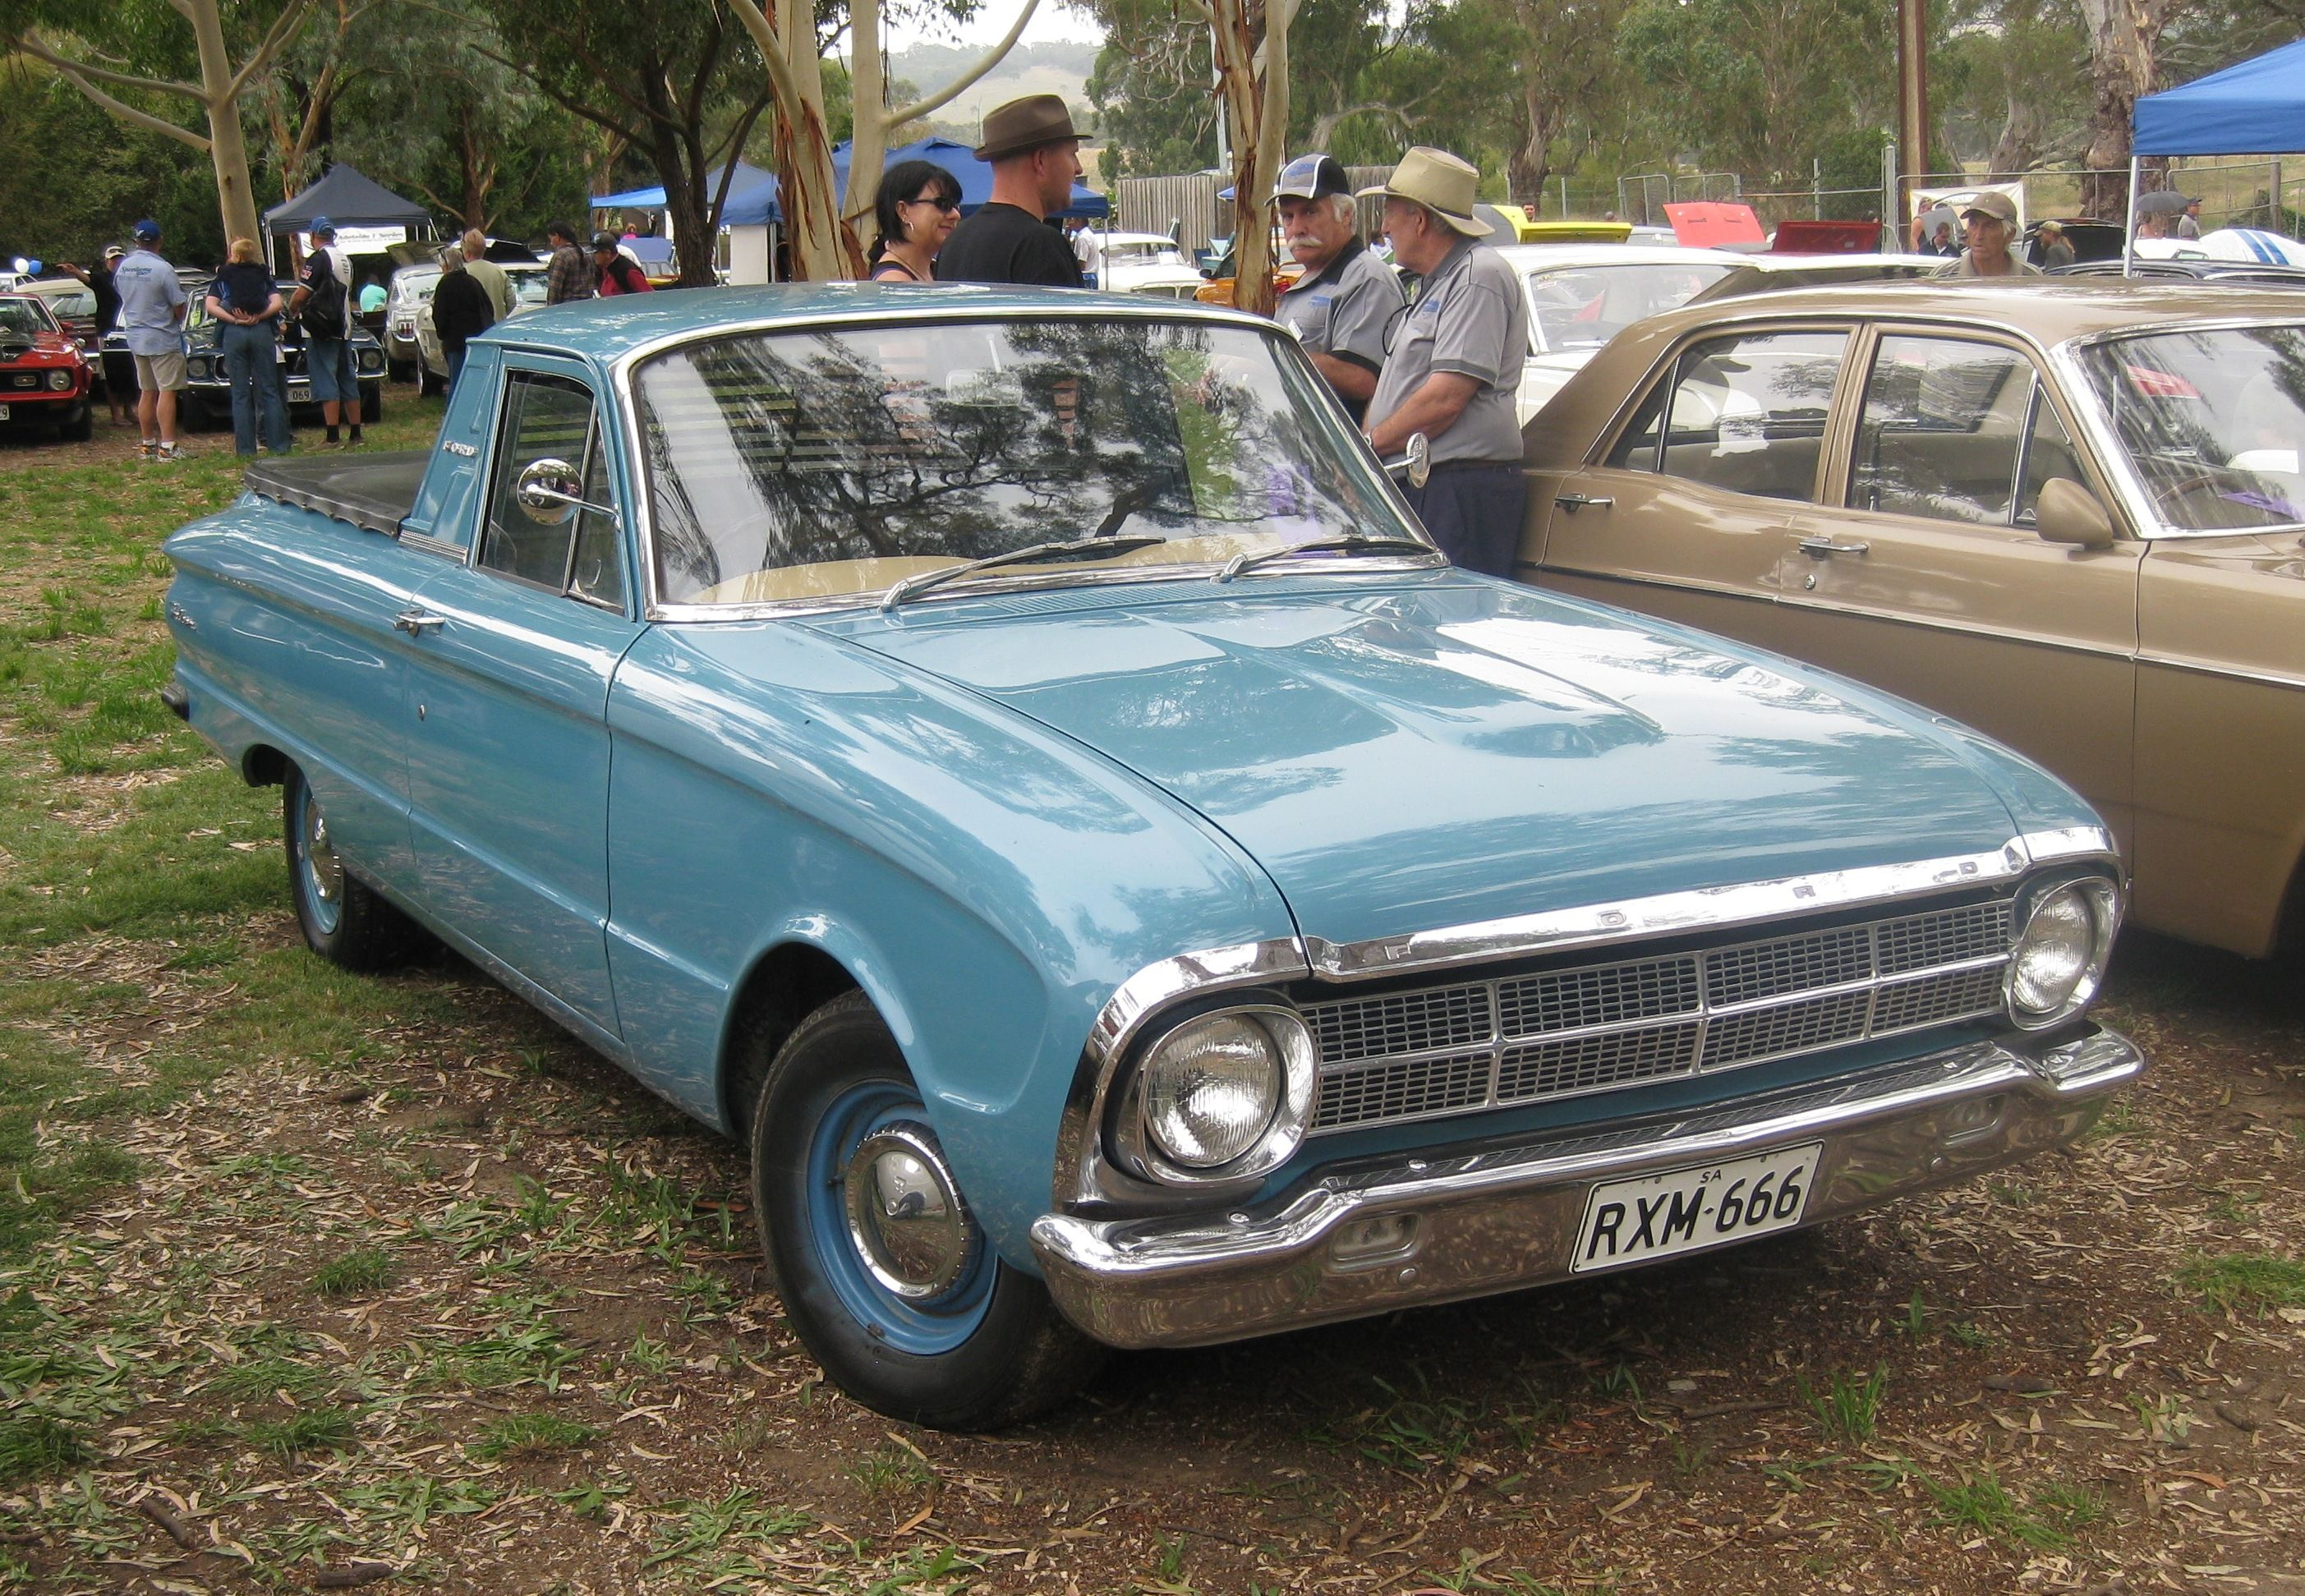 1964 ford falcon 4 door find used 1964 ford falcon 4 door 170 special - 1965 Ford Falcon Xp Deluxe Metallic Blue White 3sp A Sedan Ford Xp Pinterest Ford Falcon Falcons And Sedans